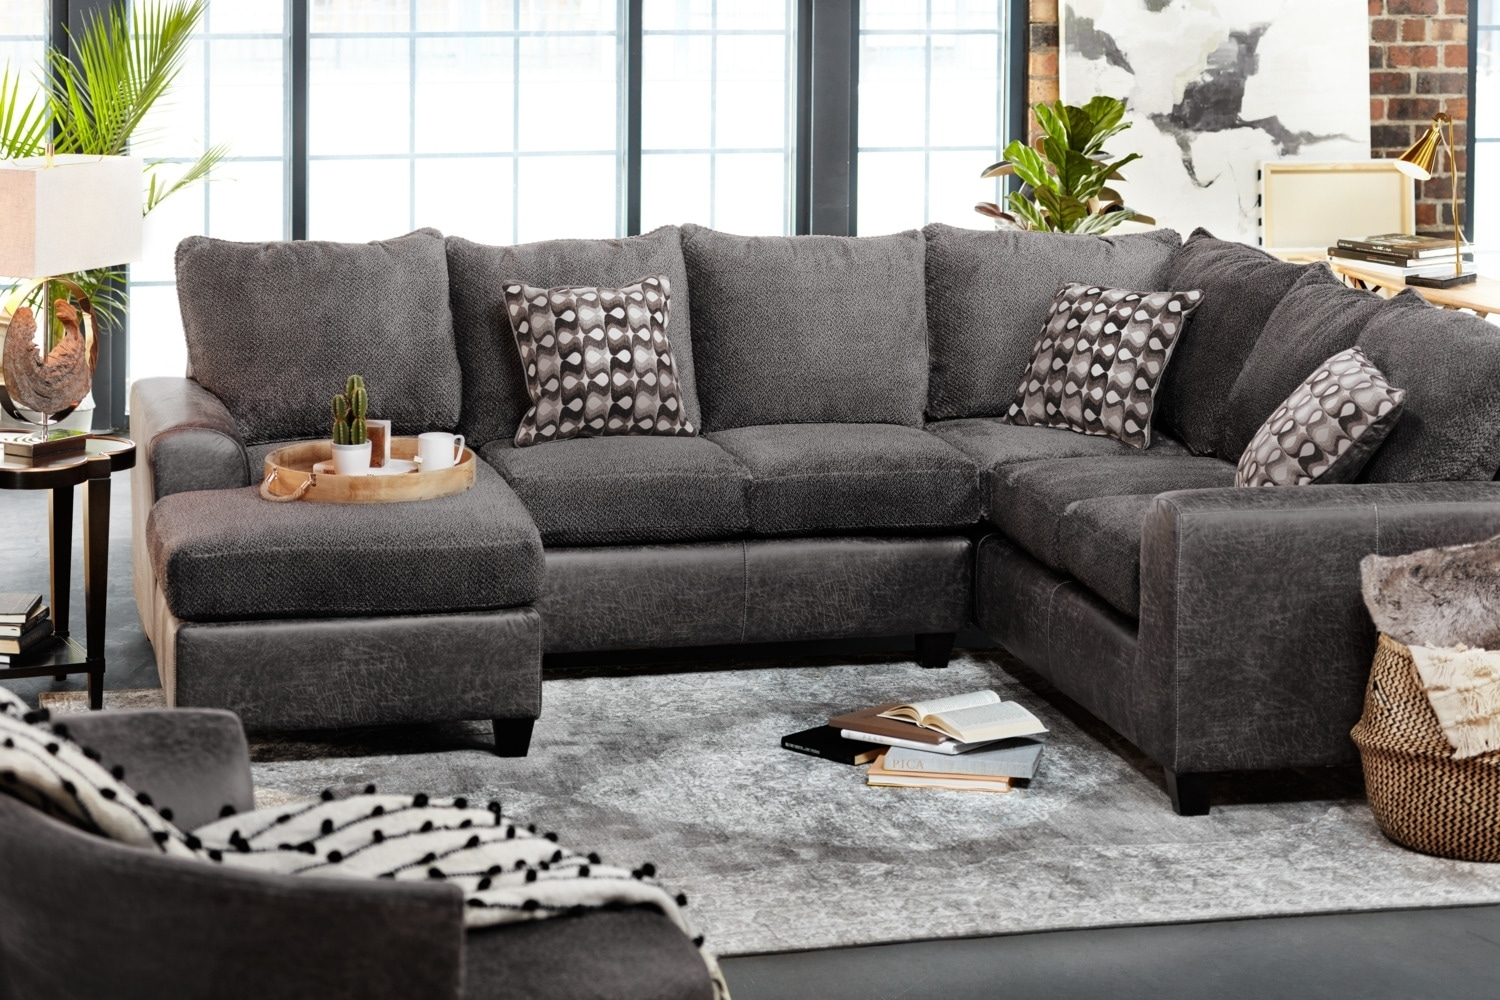 3 Piece Sectional - Locsbyhelenelorasa within Delano Smoke 3 Piece Sectionals